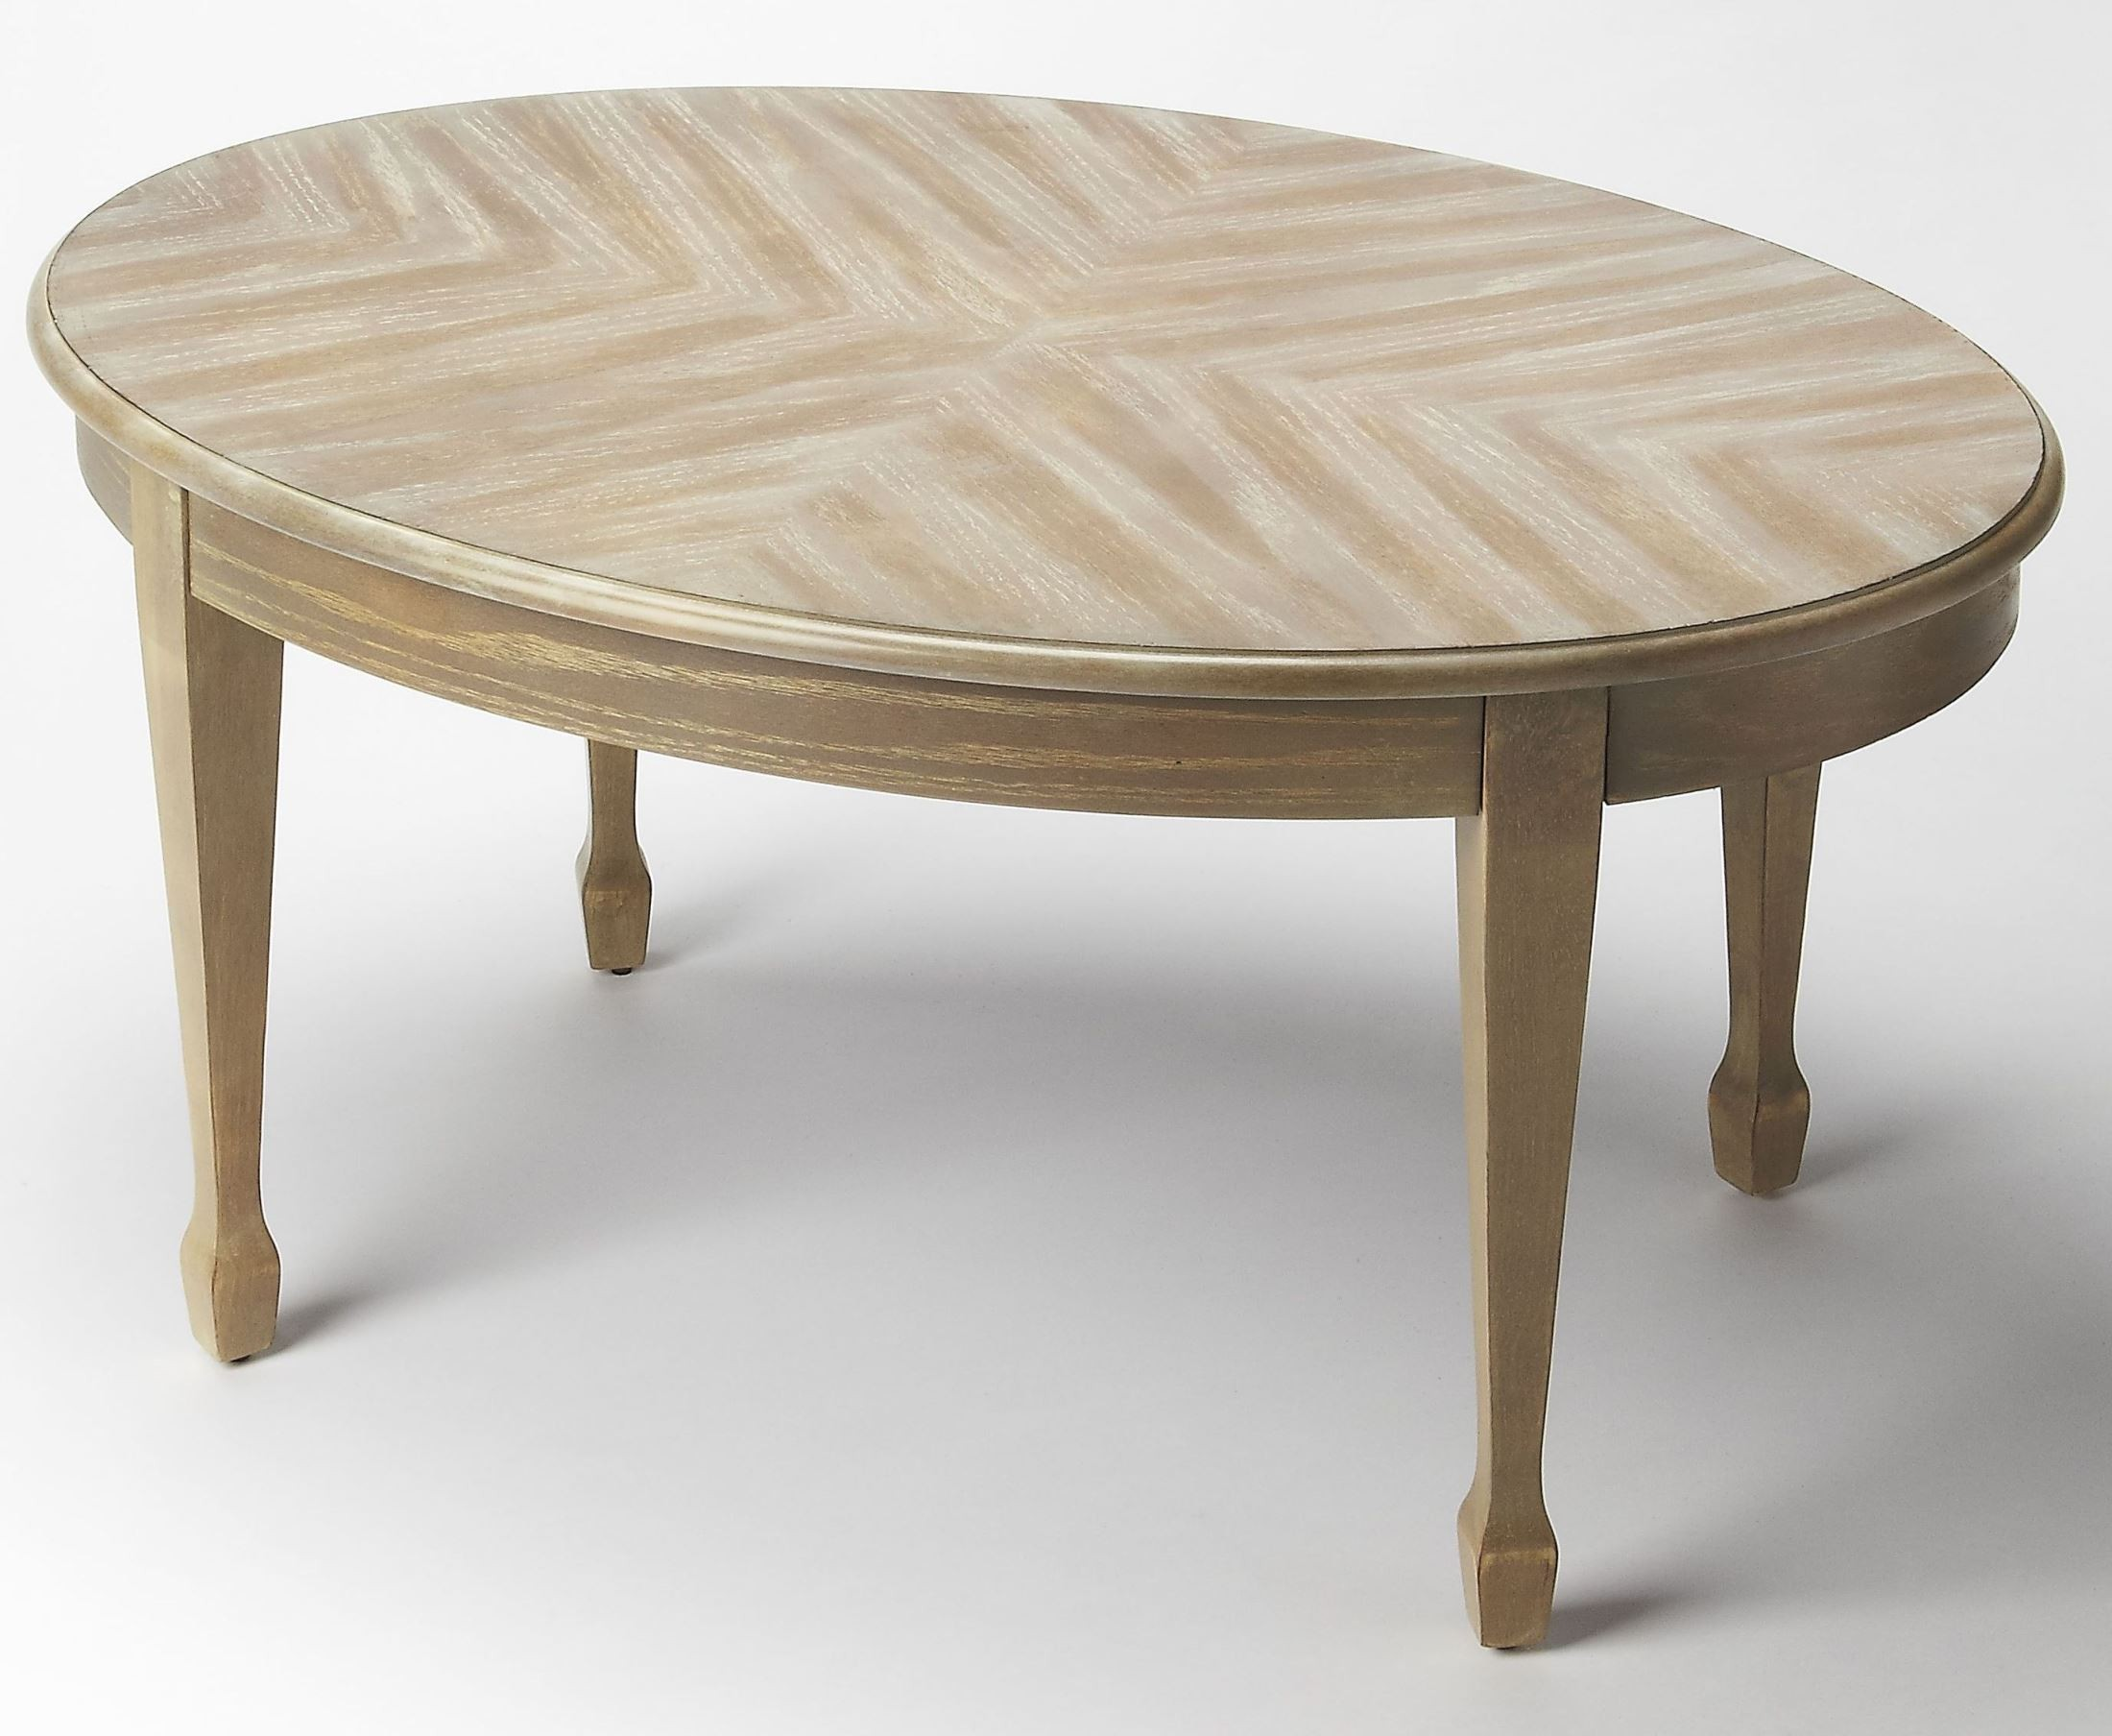 Plantation Cherry Clayton Driftwood Oval Cocktail Table From Butler 1234247 Coleman Furniture